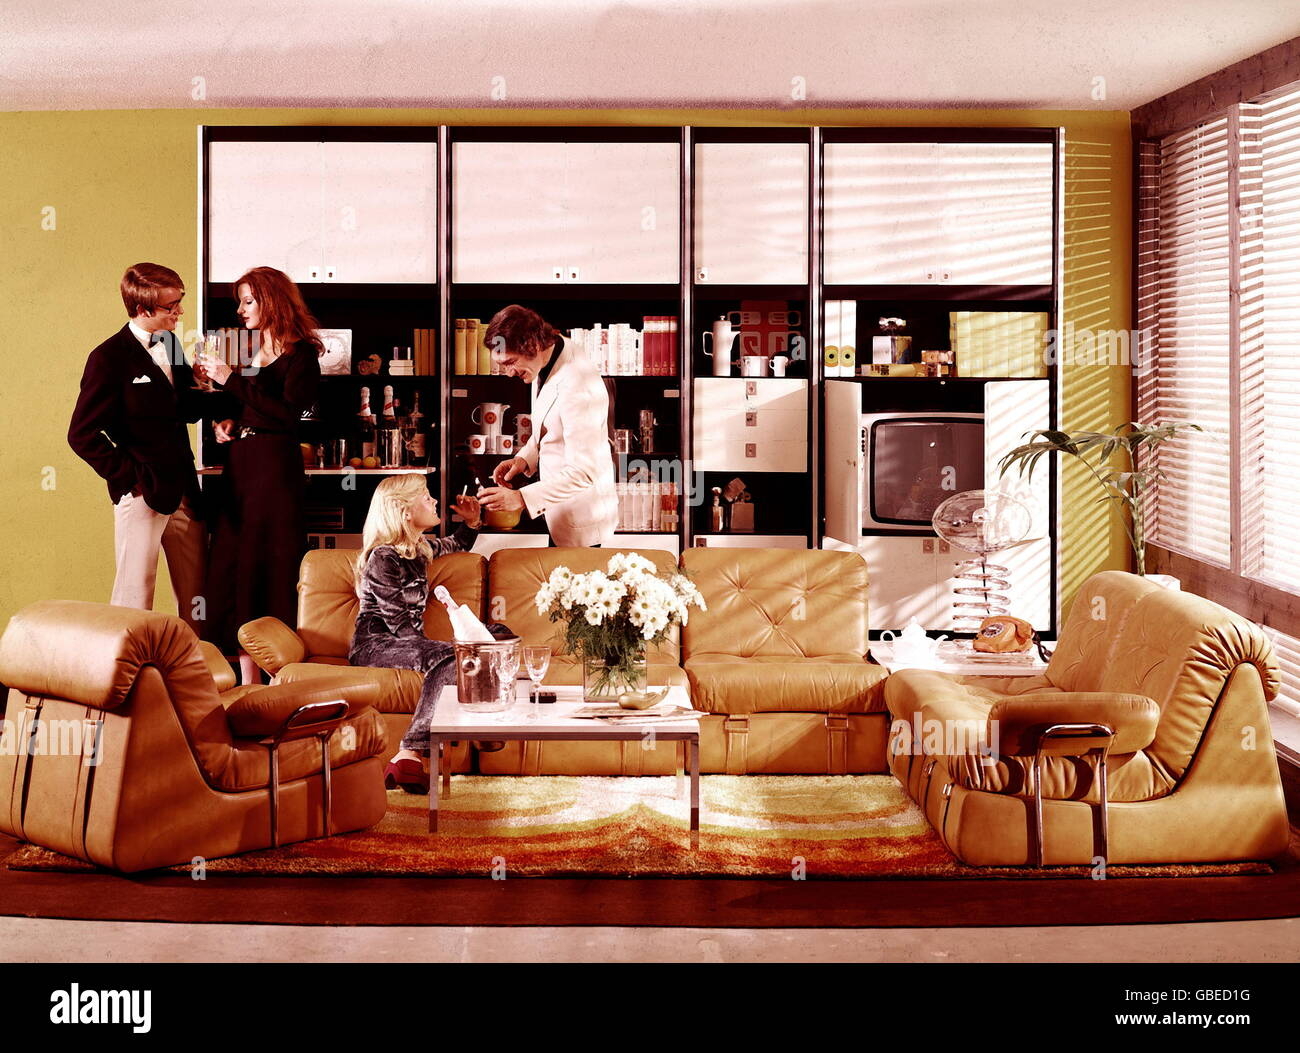 Architecture Interior Design Two Young Couples Drinking Sparkling Stock Photo Alamy